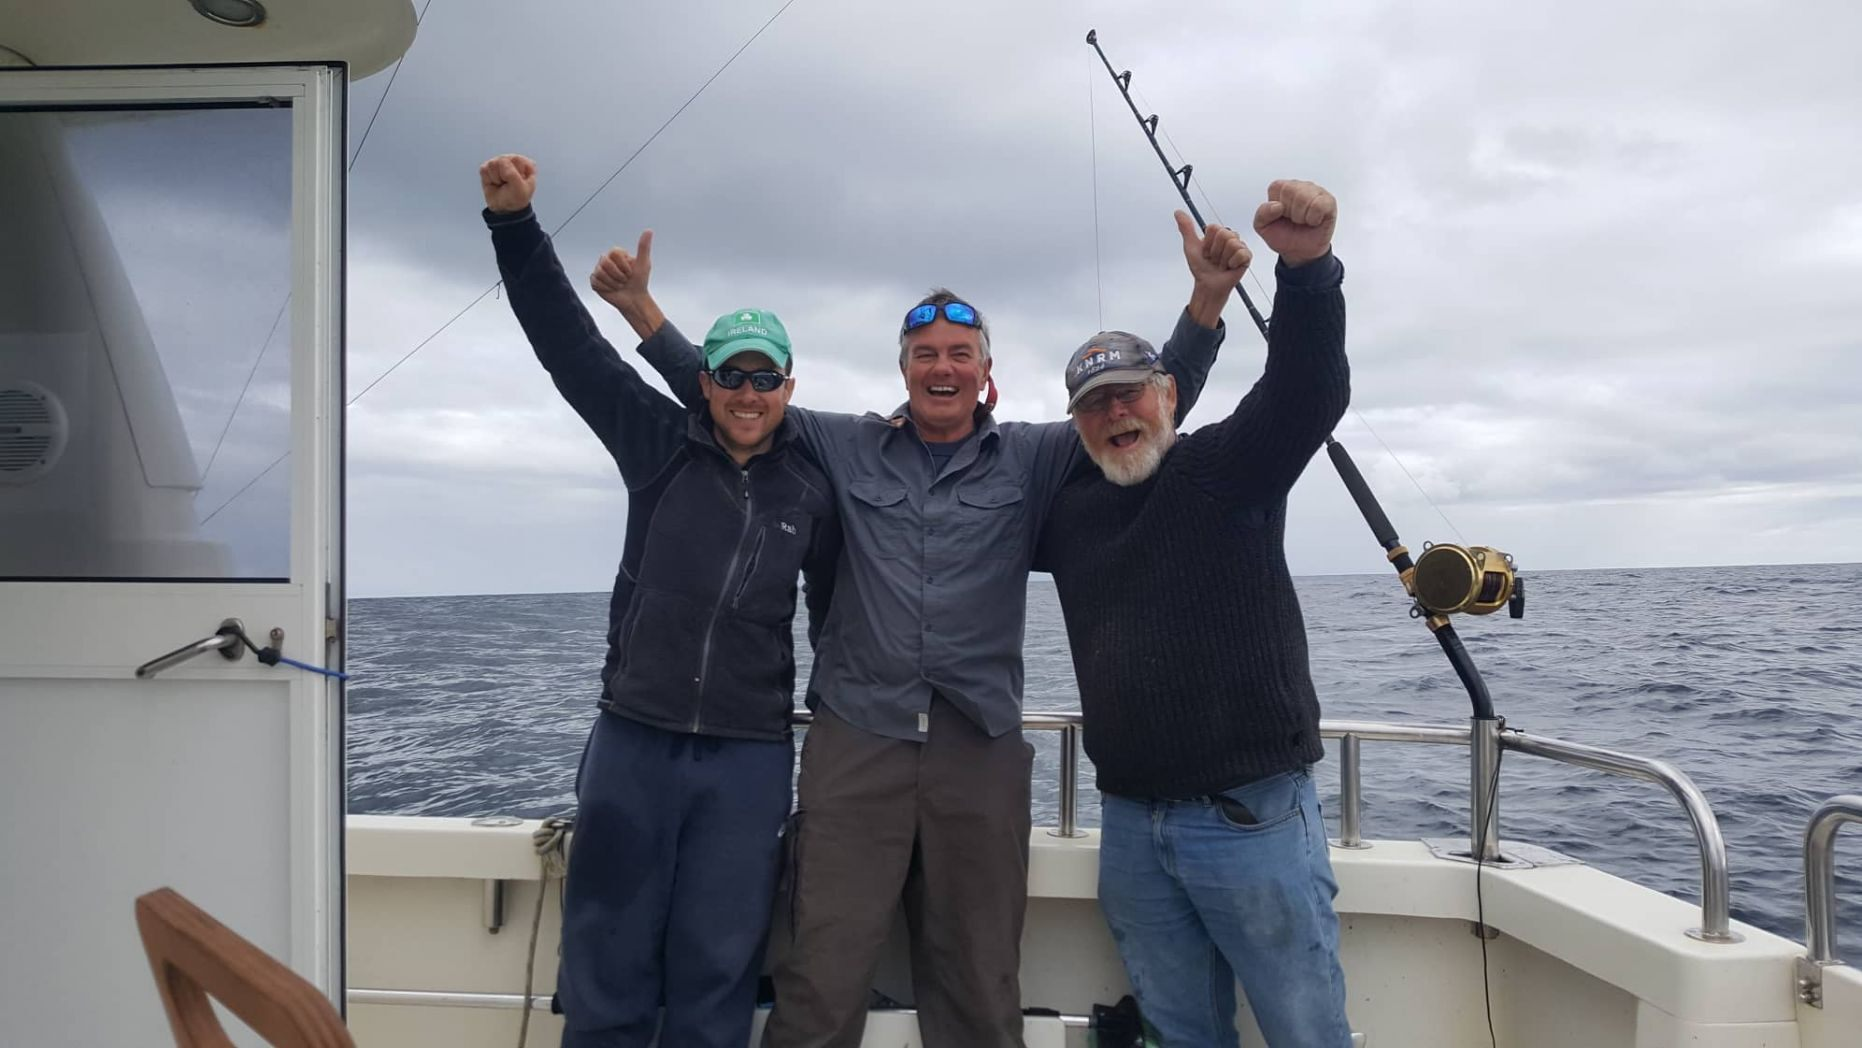 Darren O'Sullivan (left), David Edwards (center) and Henk Veldman (right) were able to catch, tag and release the first-ever bluefin tuna in waters off the south coast of Ireland.